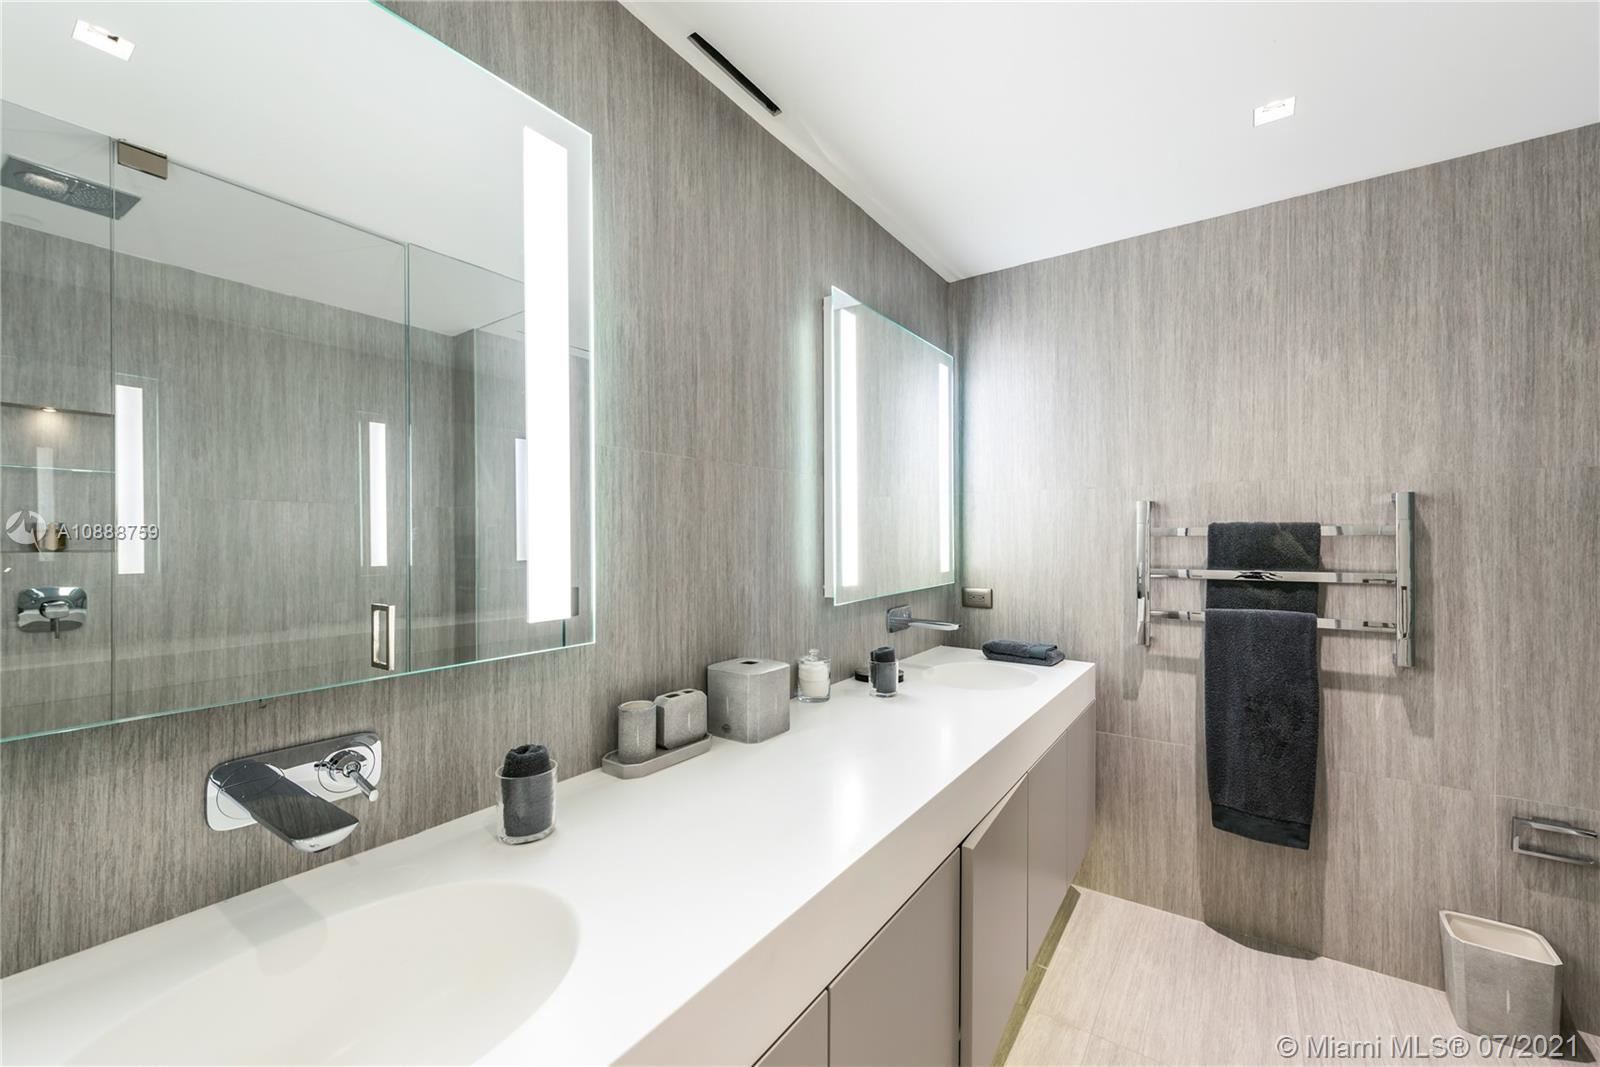 Photo 42 of Listing MLS a10888759 in 5282 Fisher Island Dr #5282 Miami FL 33109